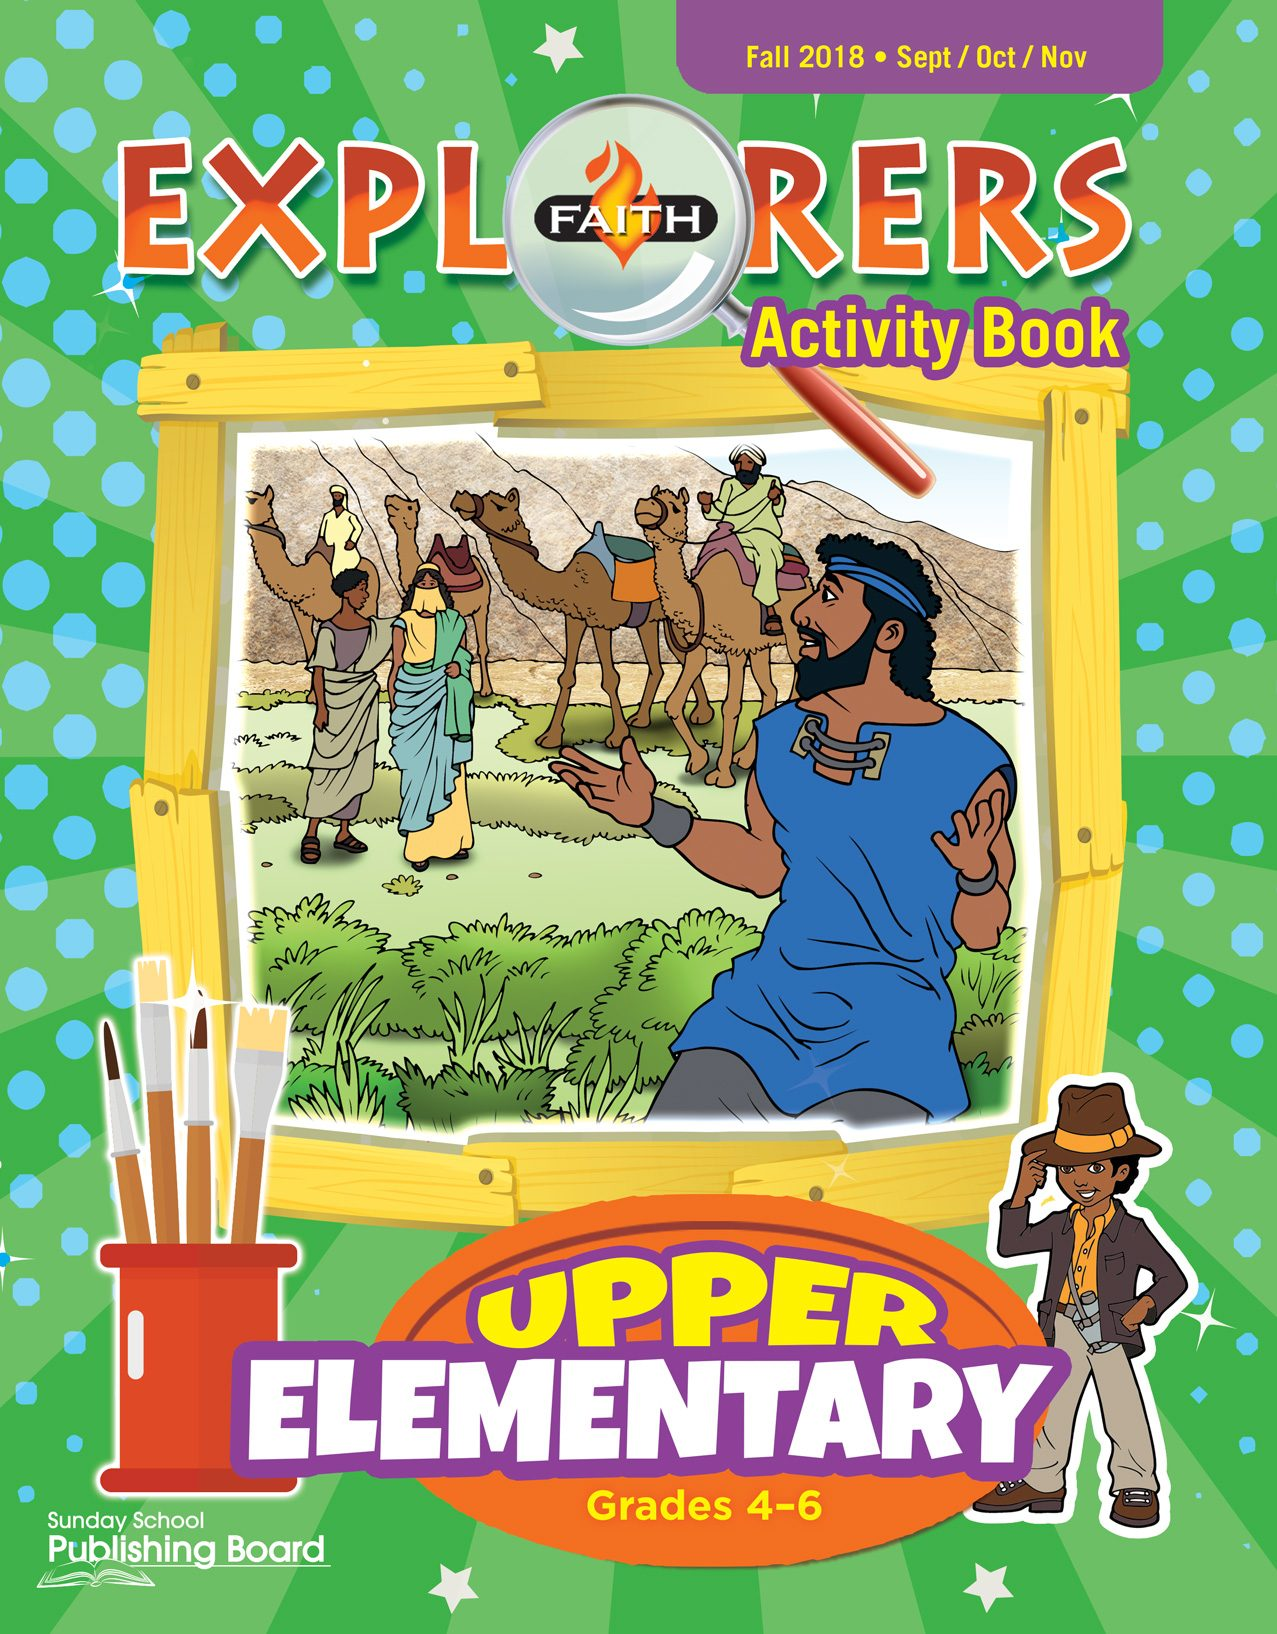 Faith Explorers Activity Book, Upper Elementary (Grades 4-6)